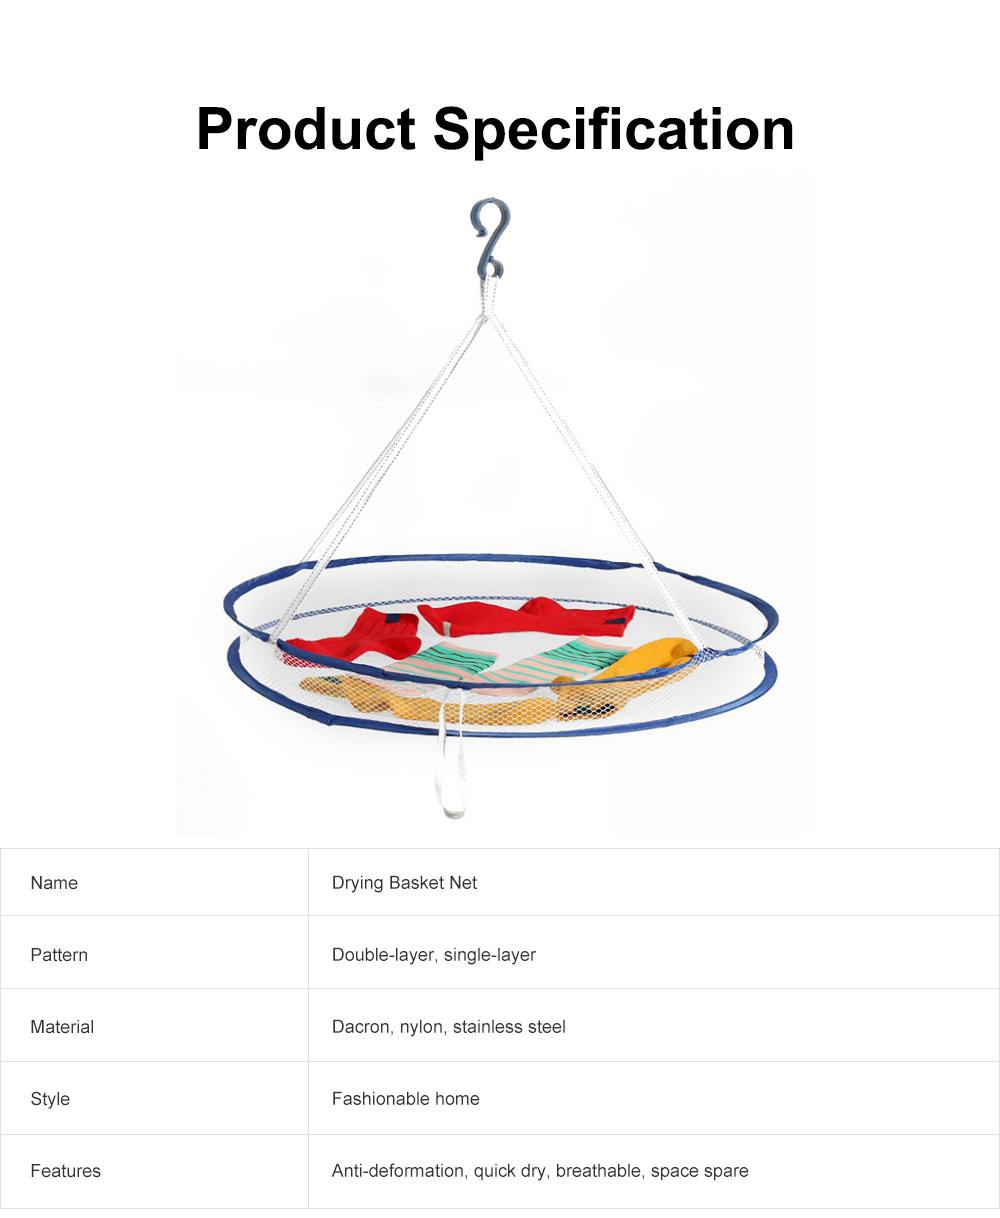 Foldable Drying Basket Hanging Net Retractable Drying Rack for Clothes, Underwear, Bra, Socks, Sweaters, Single, Double-Layer Drying Basket Net 6